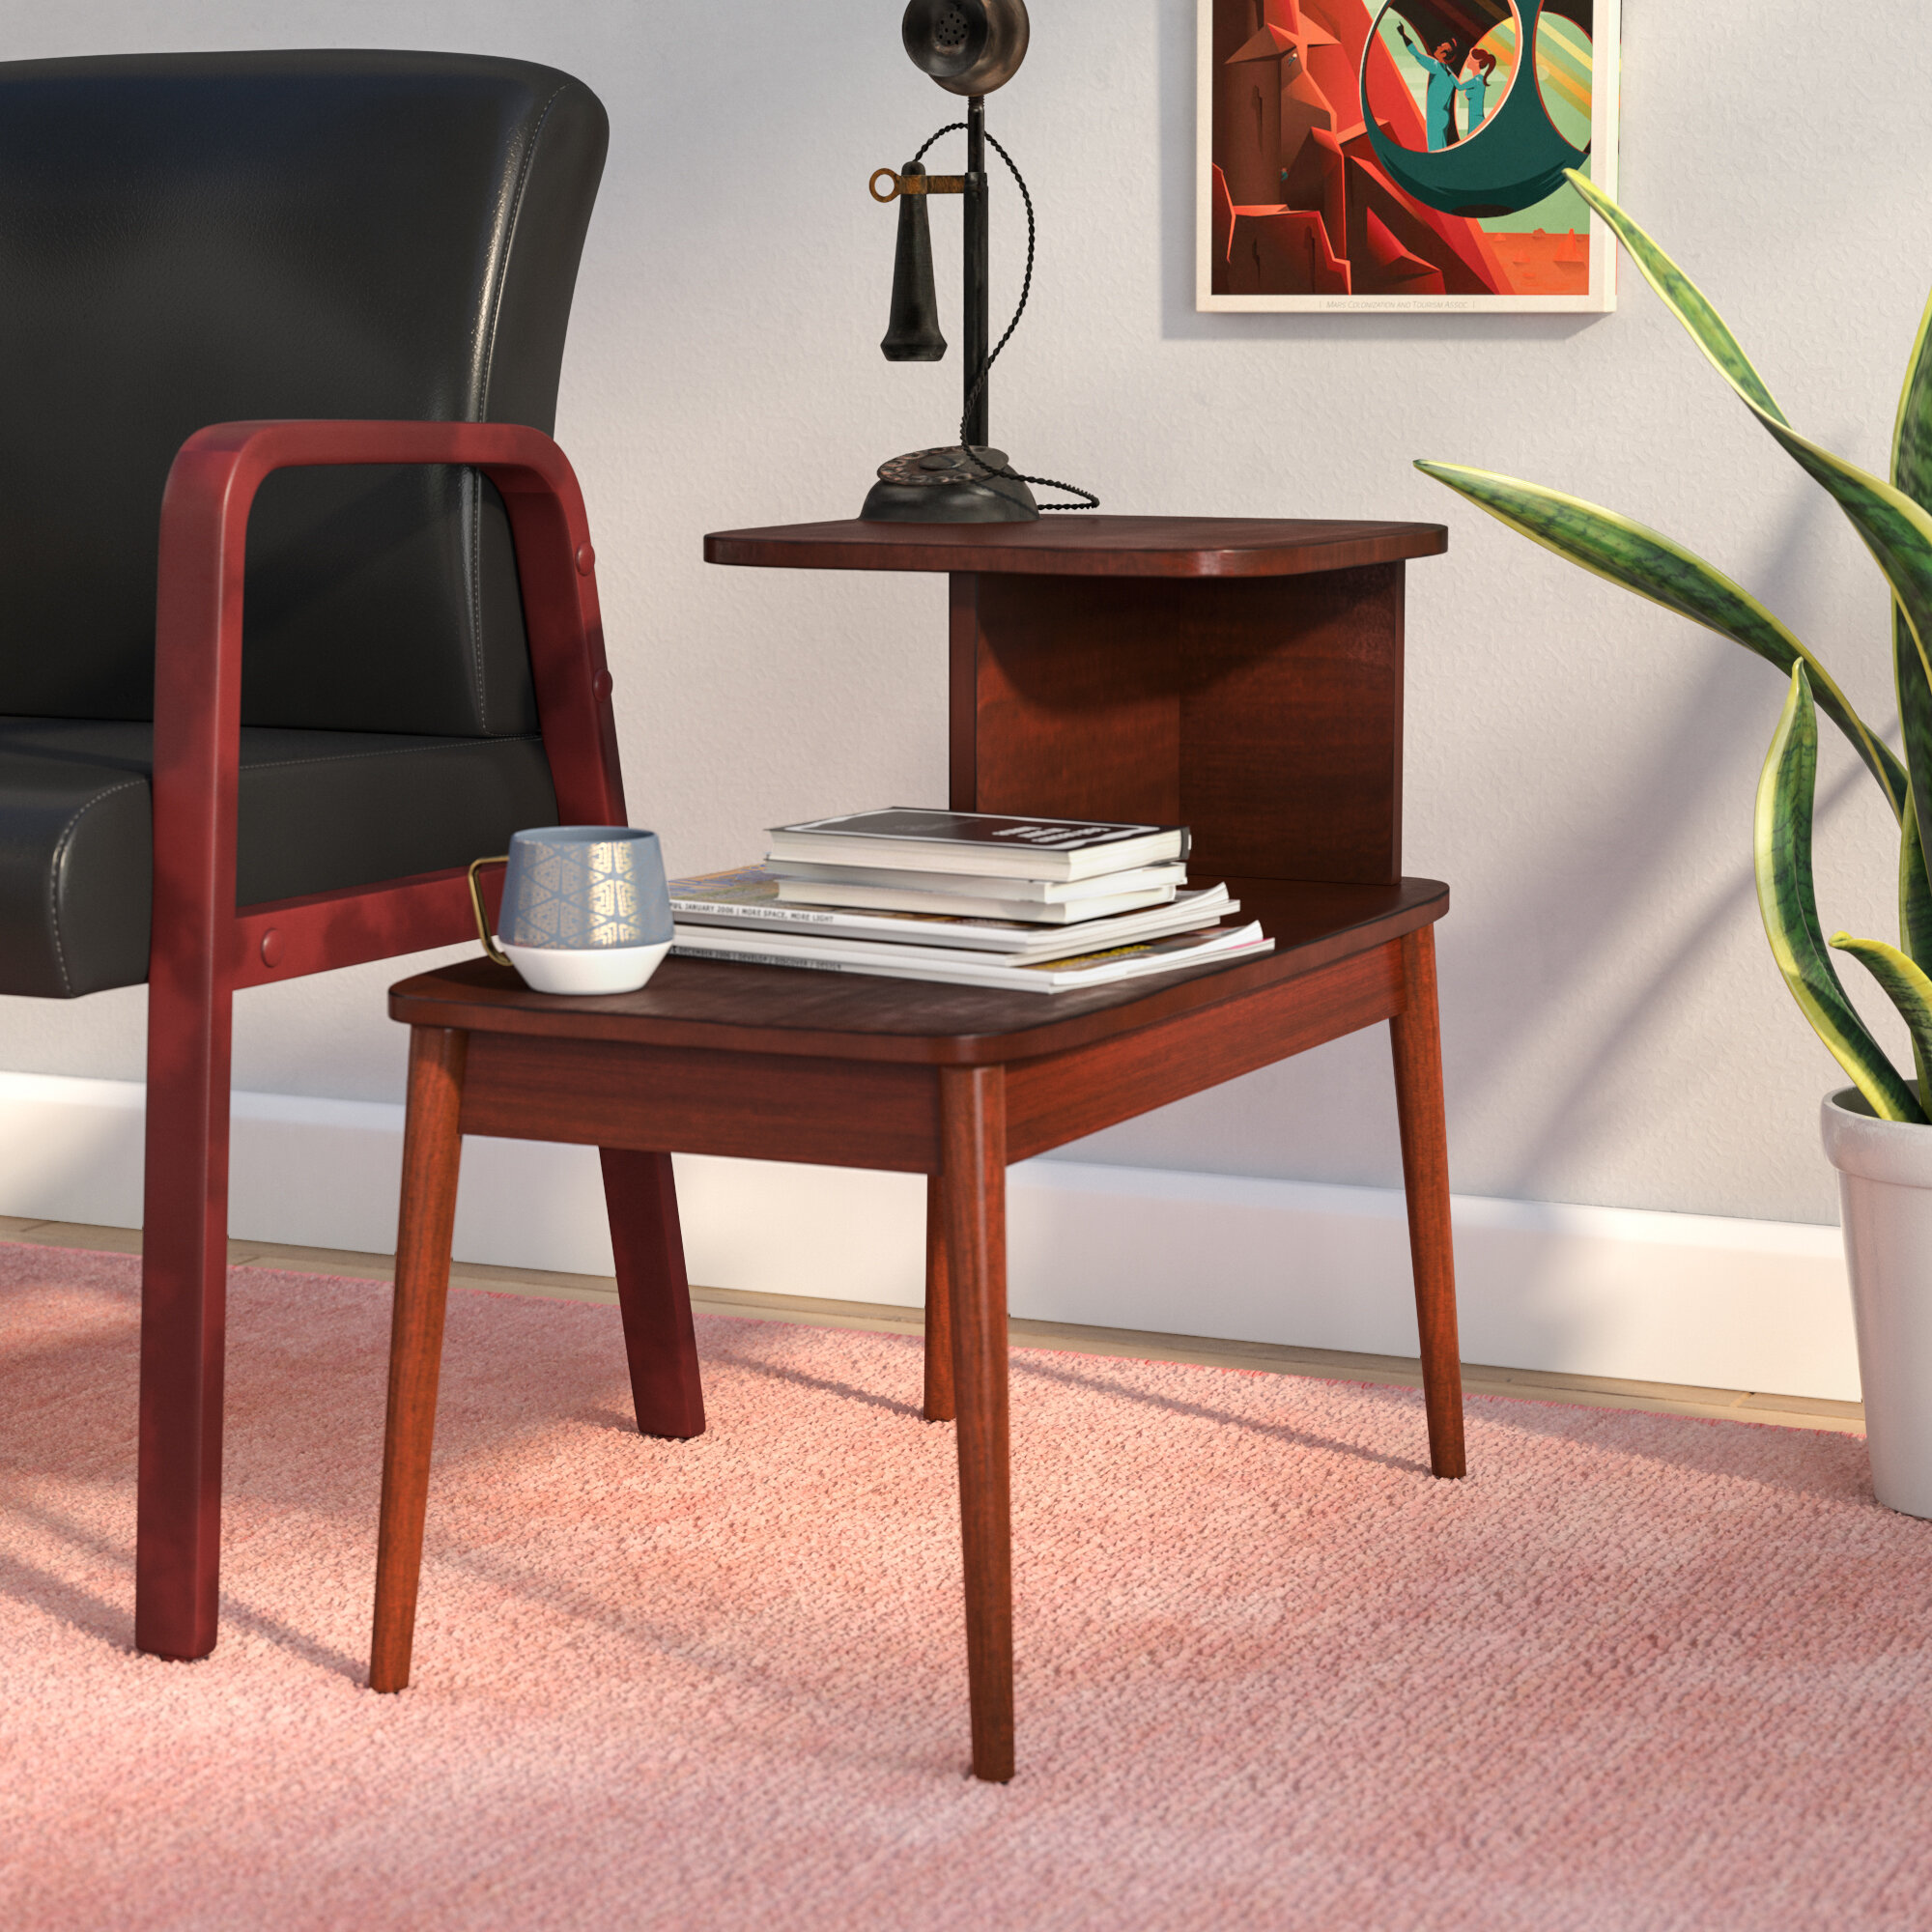 Ebern designs darcey mid century end table reviews wayfair